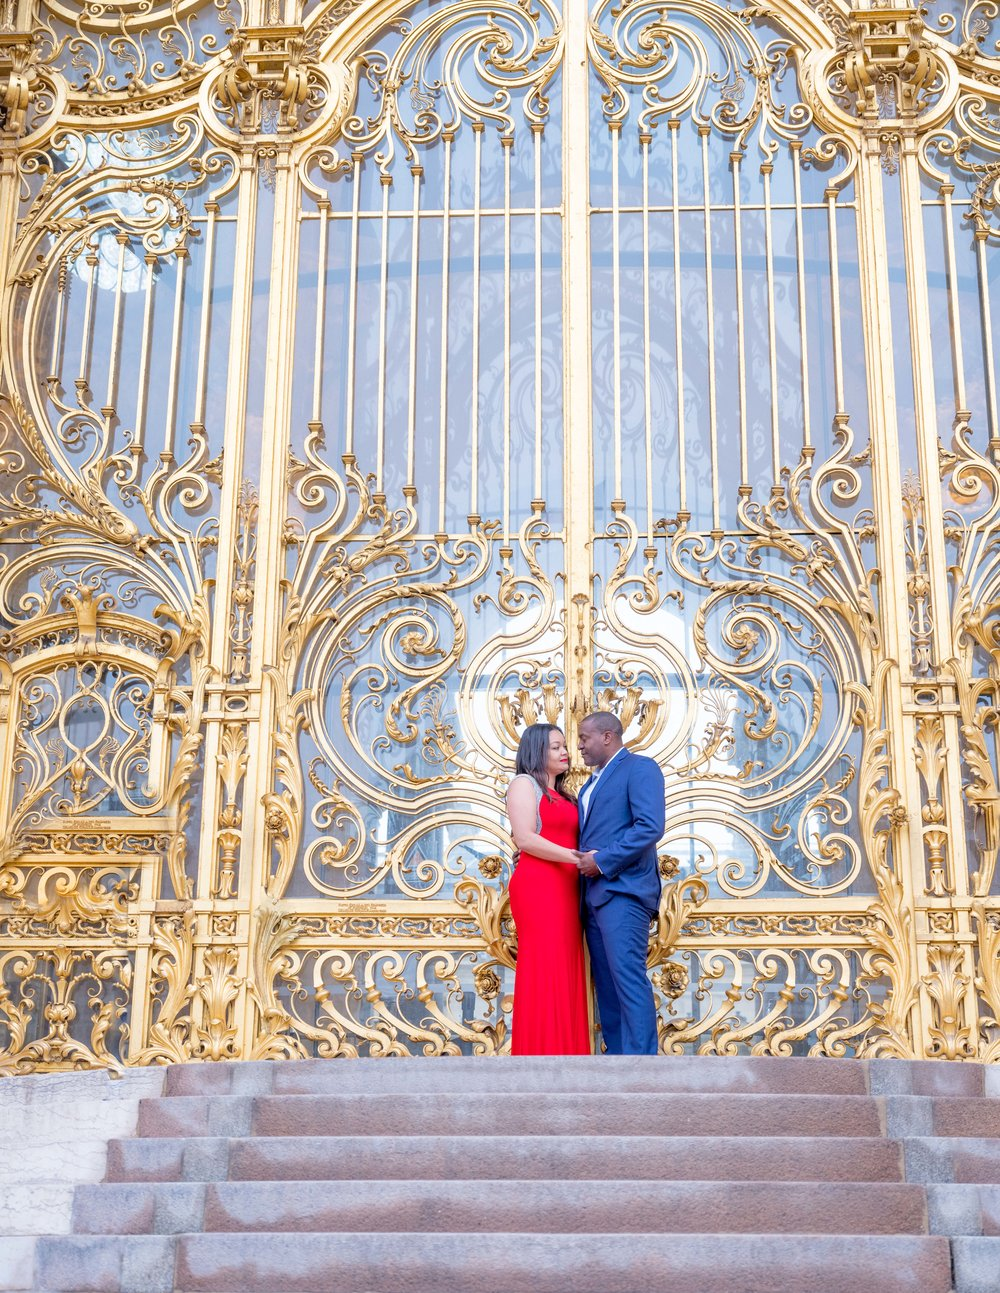 Golden dates and a red dress, color galore!